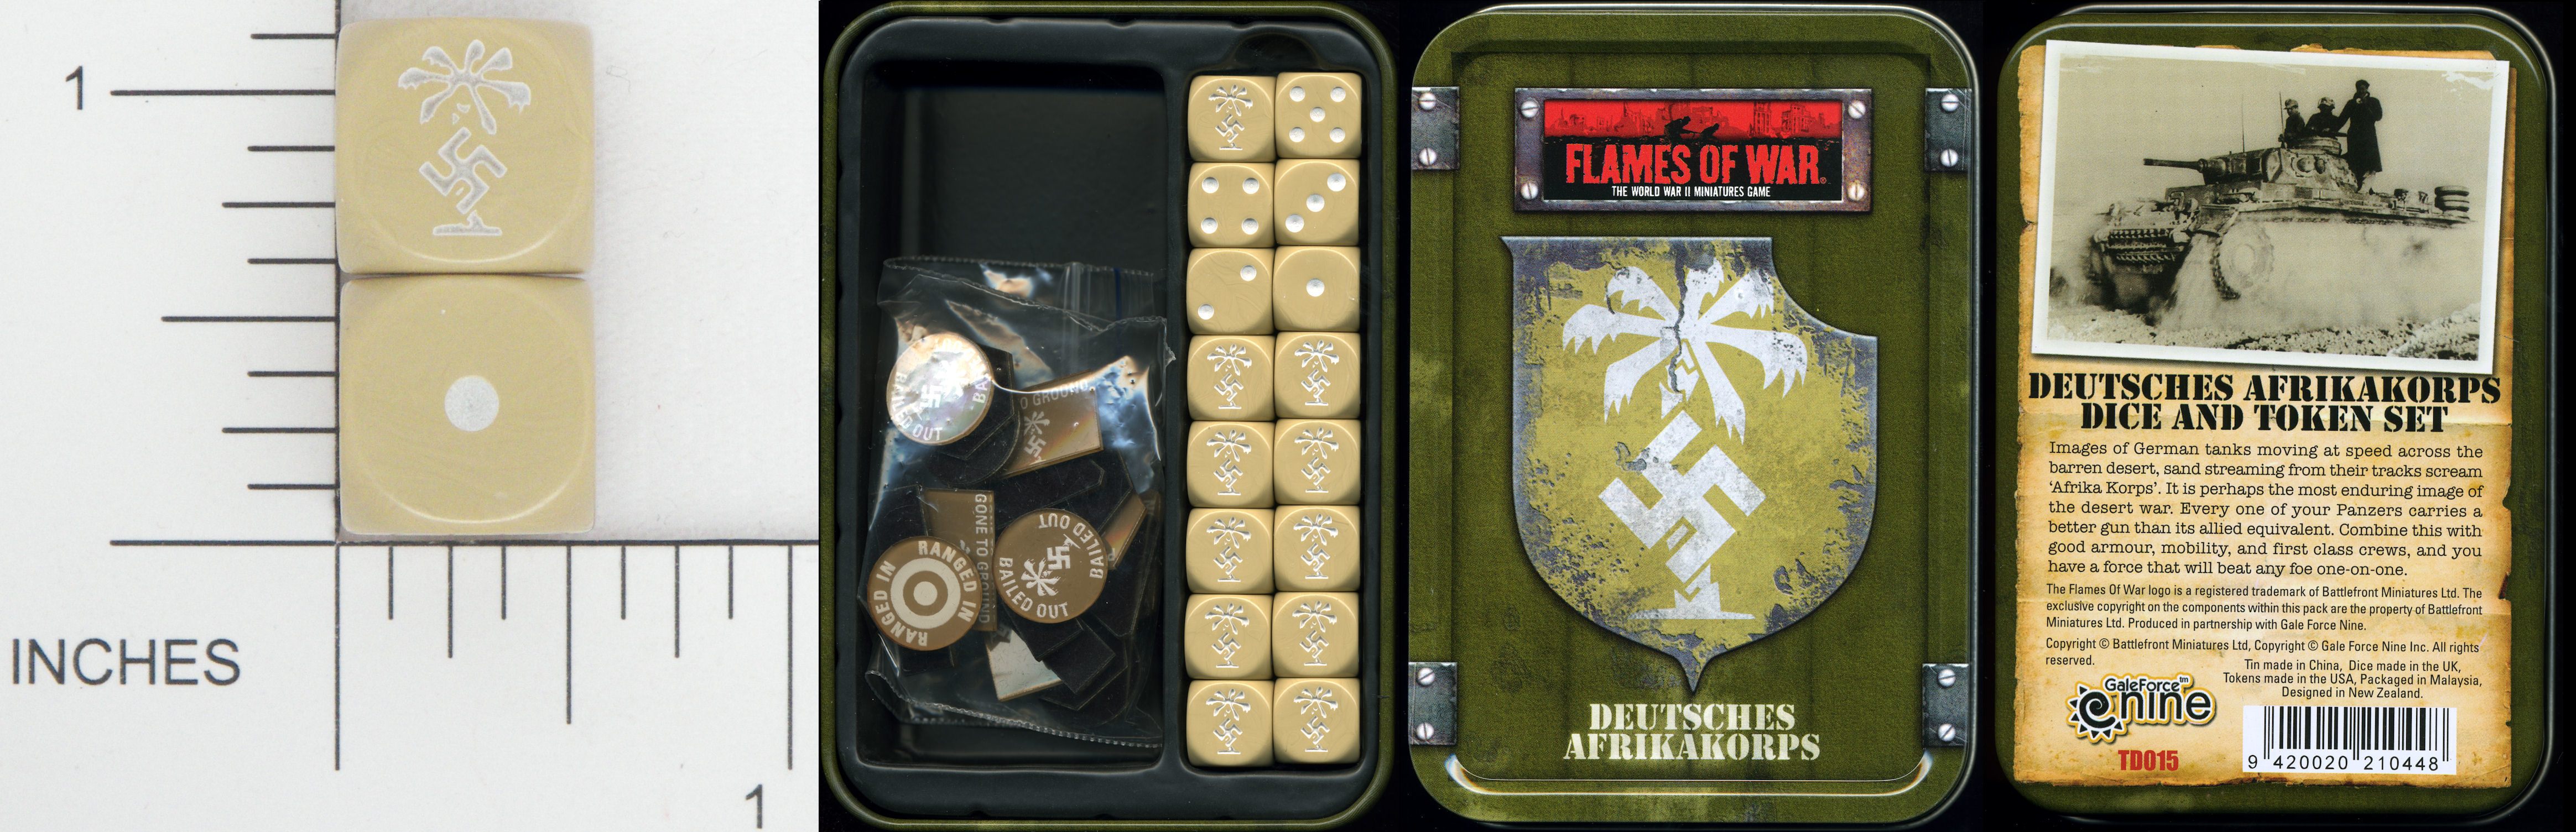 MINT15_GALE_FORCE_NINE_FOR_FLAMES_OF_WAR